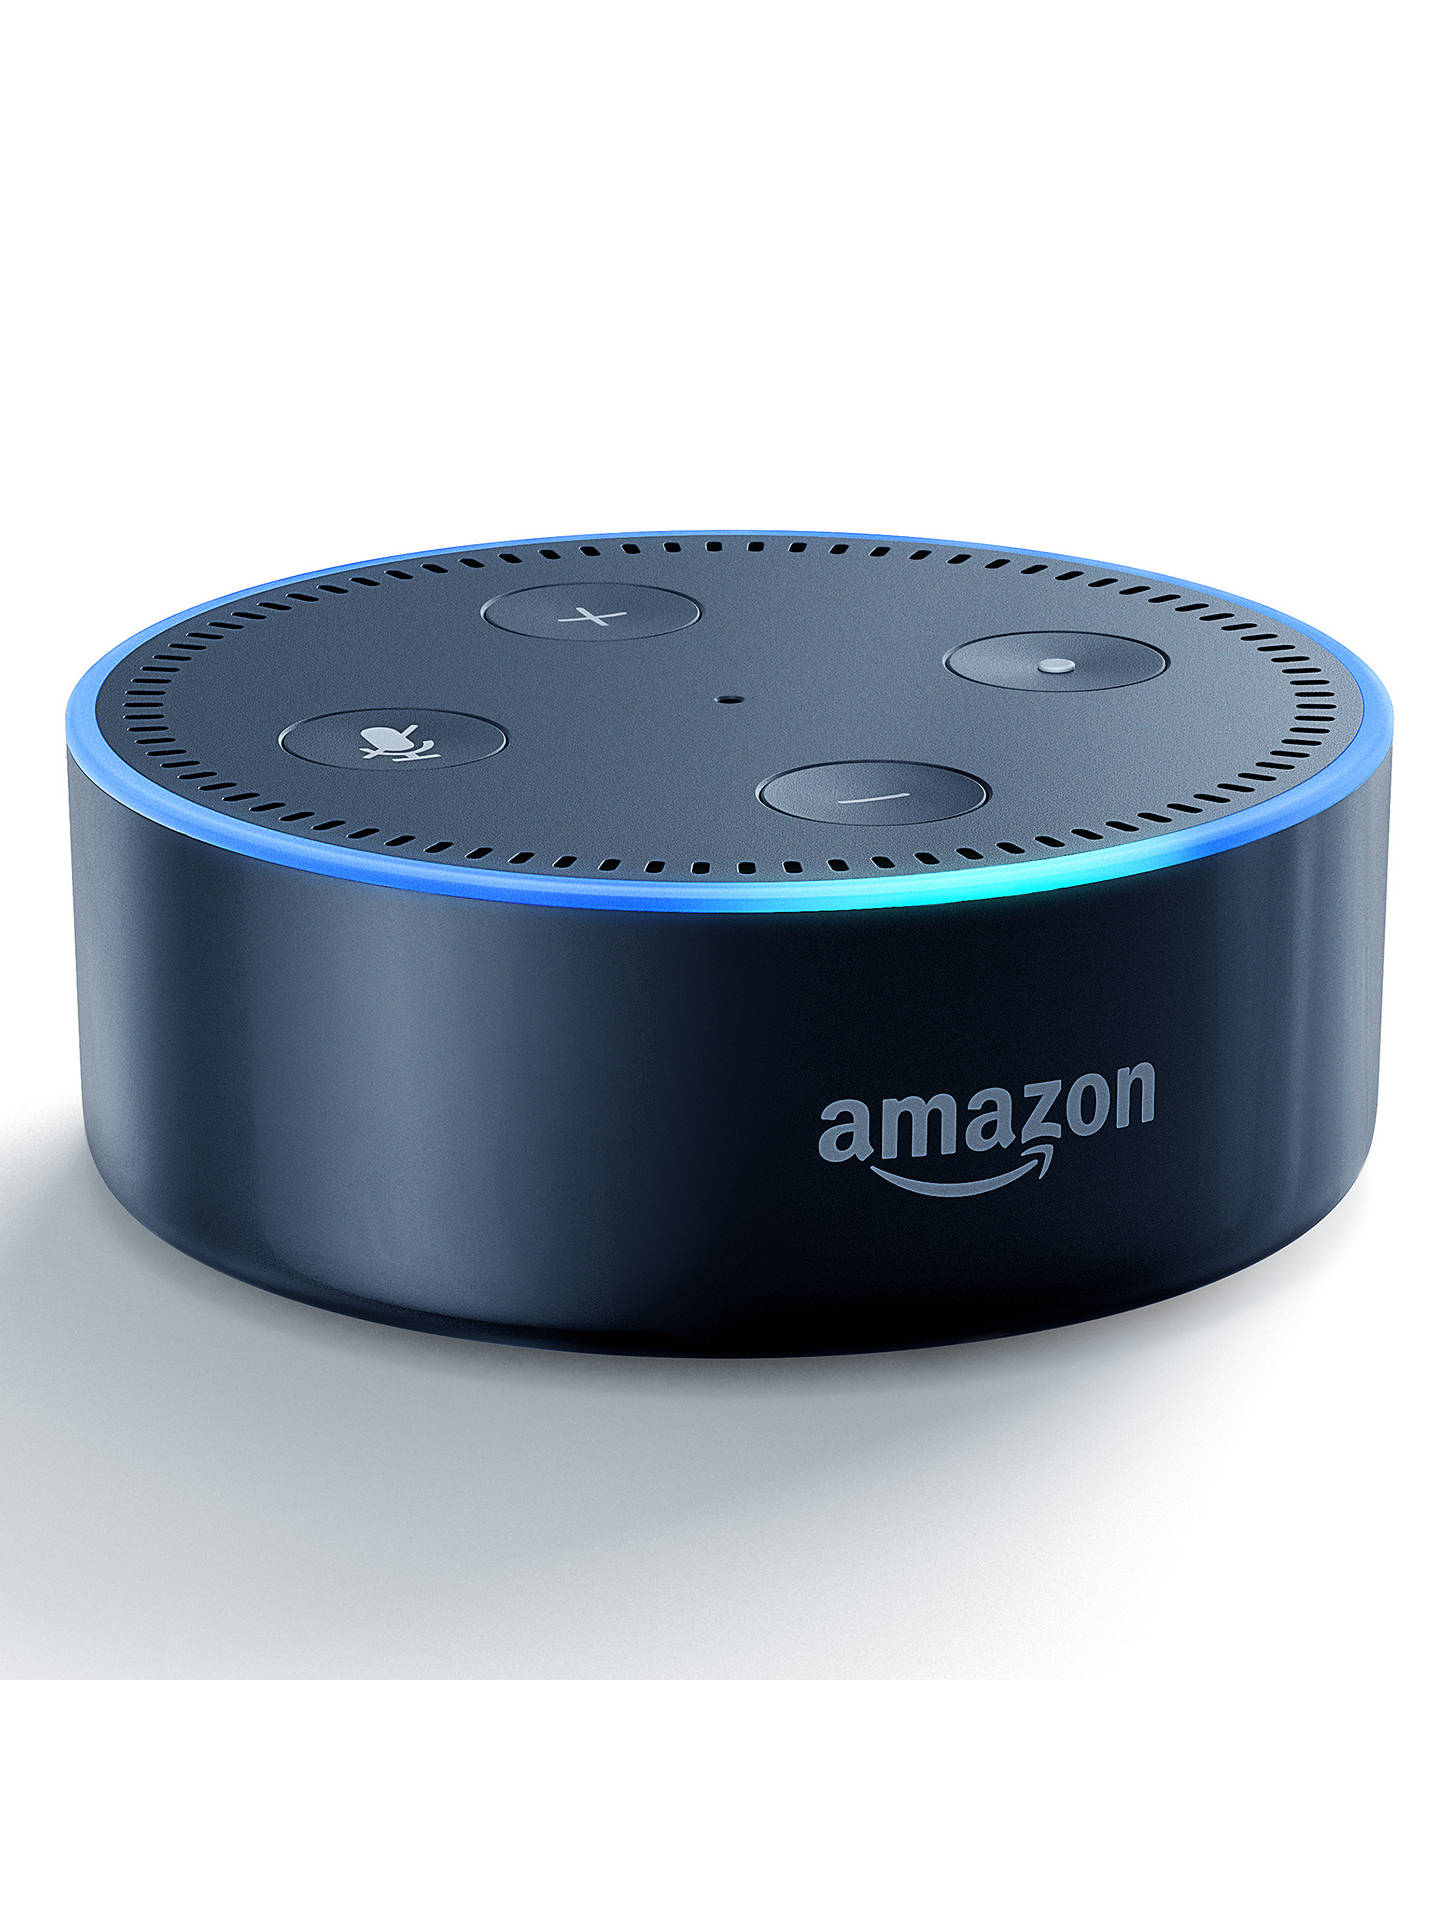 BuyAmazon Echo Dot Smart Device with Alexa Voice Recognition & Control, Black Online at johnlewis.com